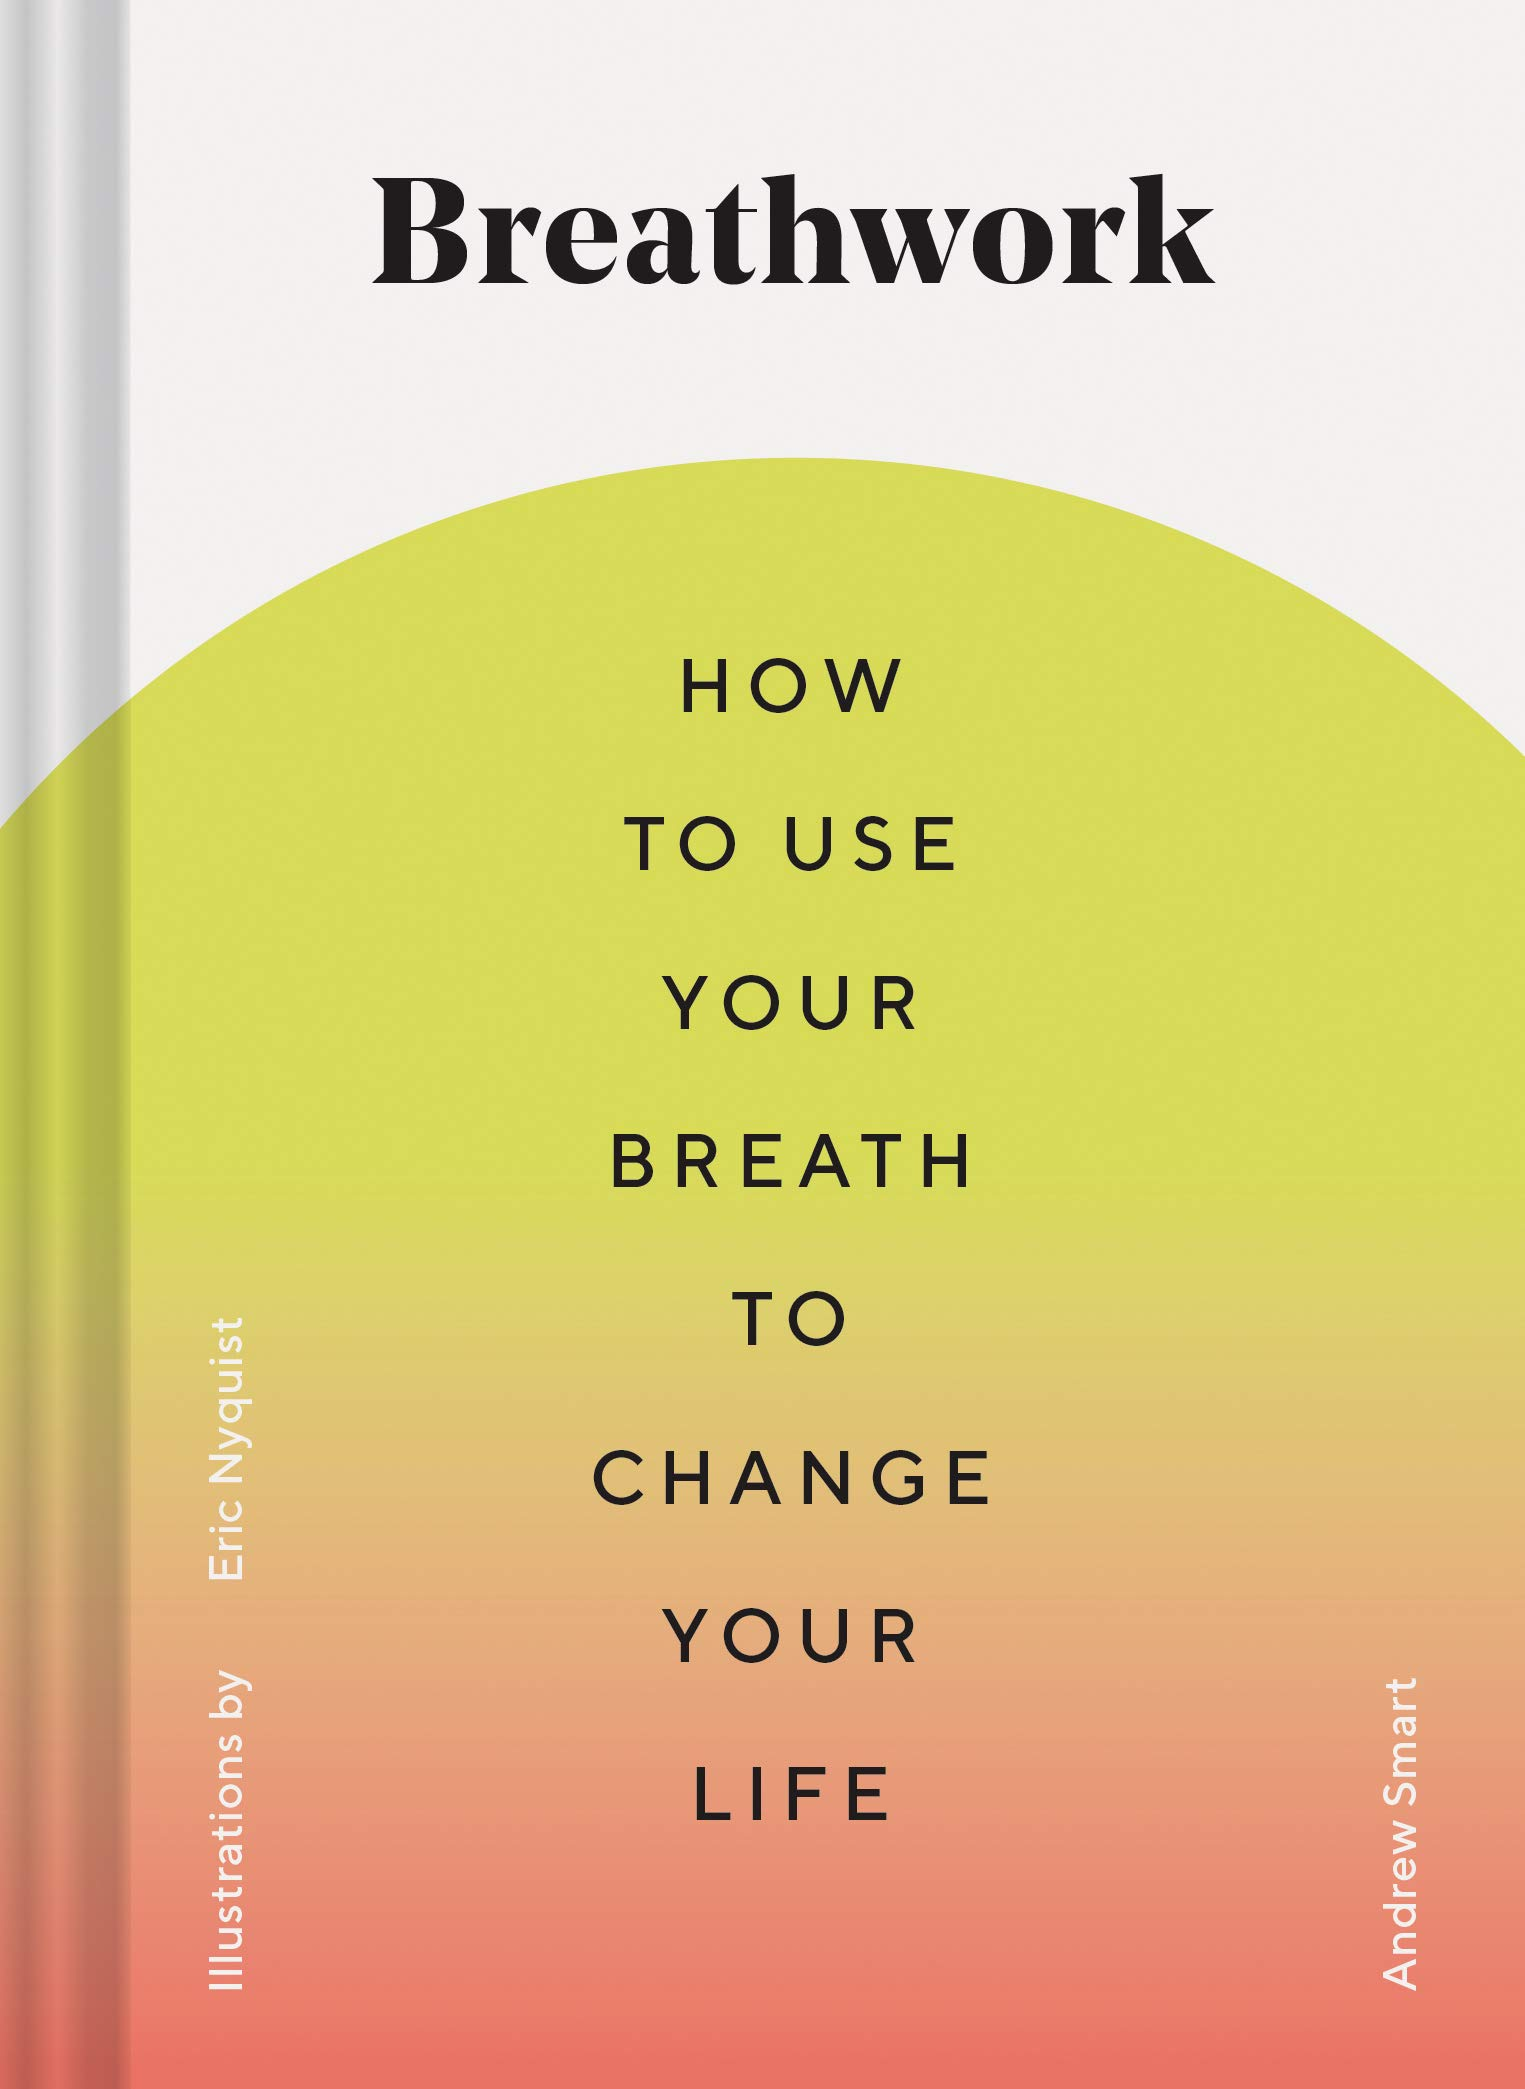 Image OfBreathwork: How To Use Your Breath To Change Your Life (Breathing Techniques For Anxiety Relief And Stress, Breath Exercis...